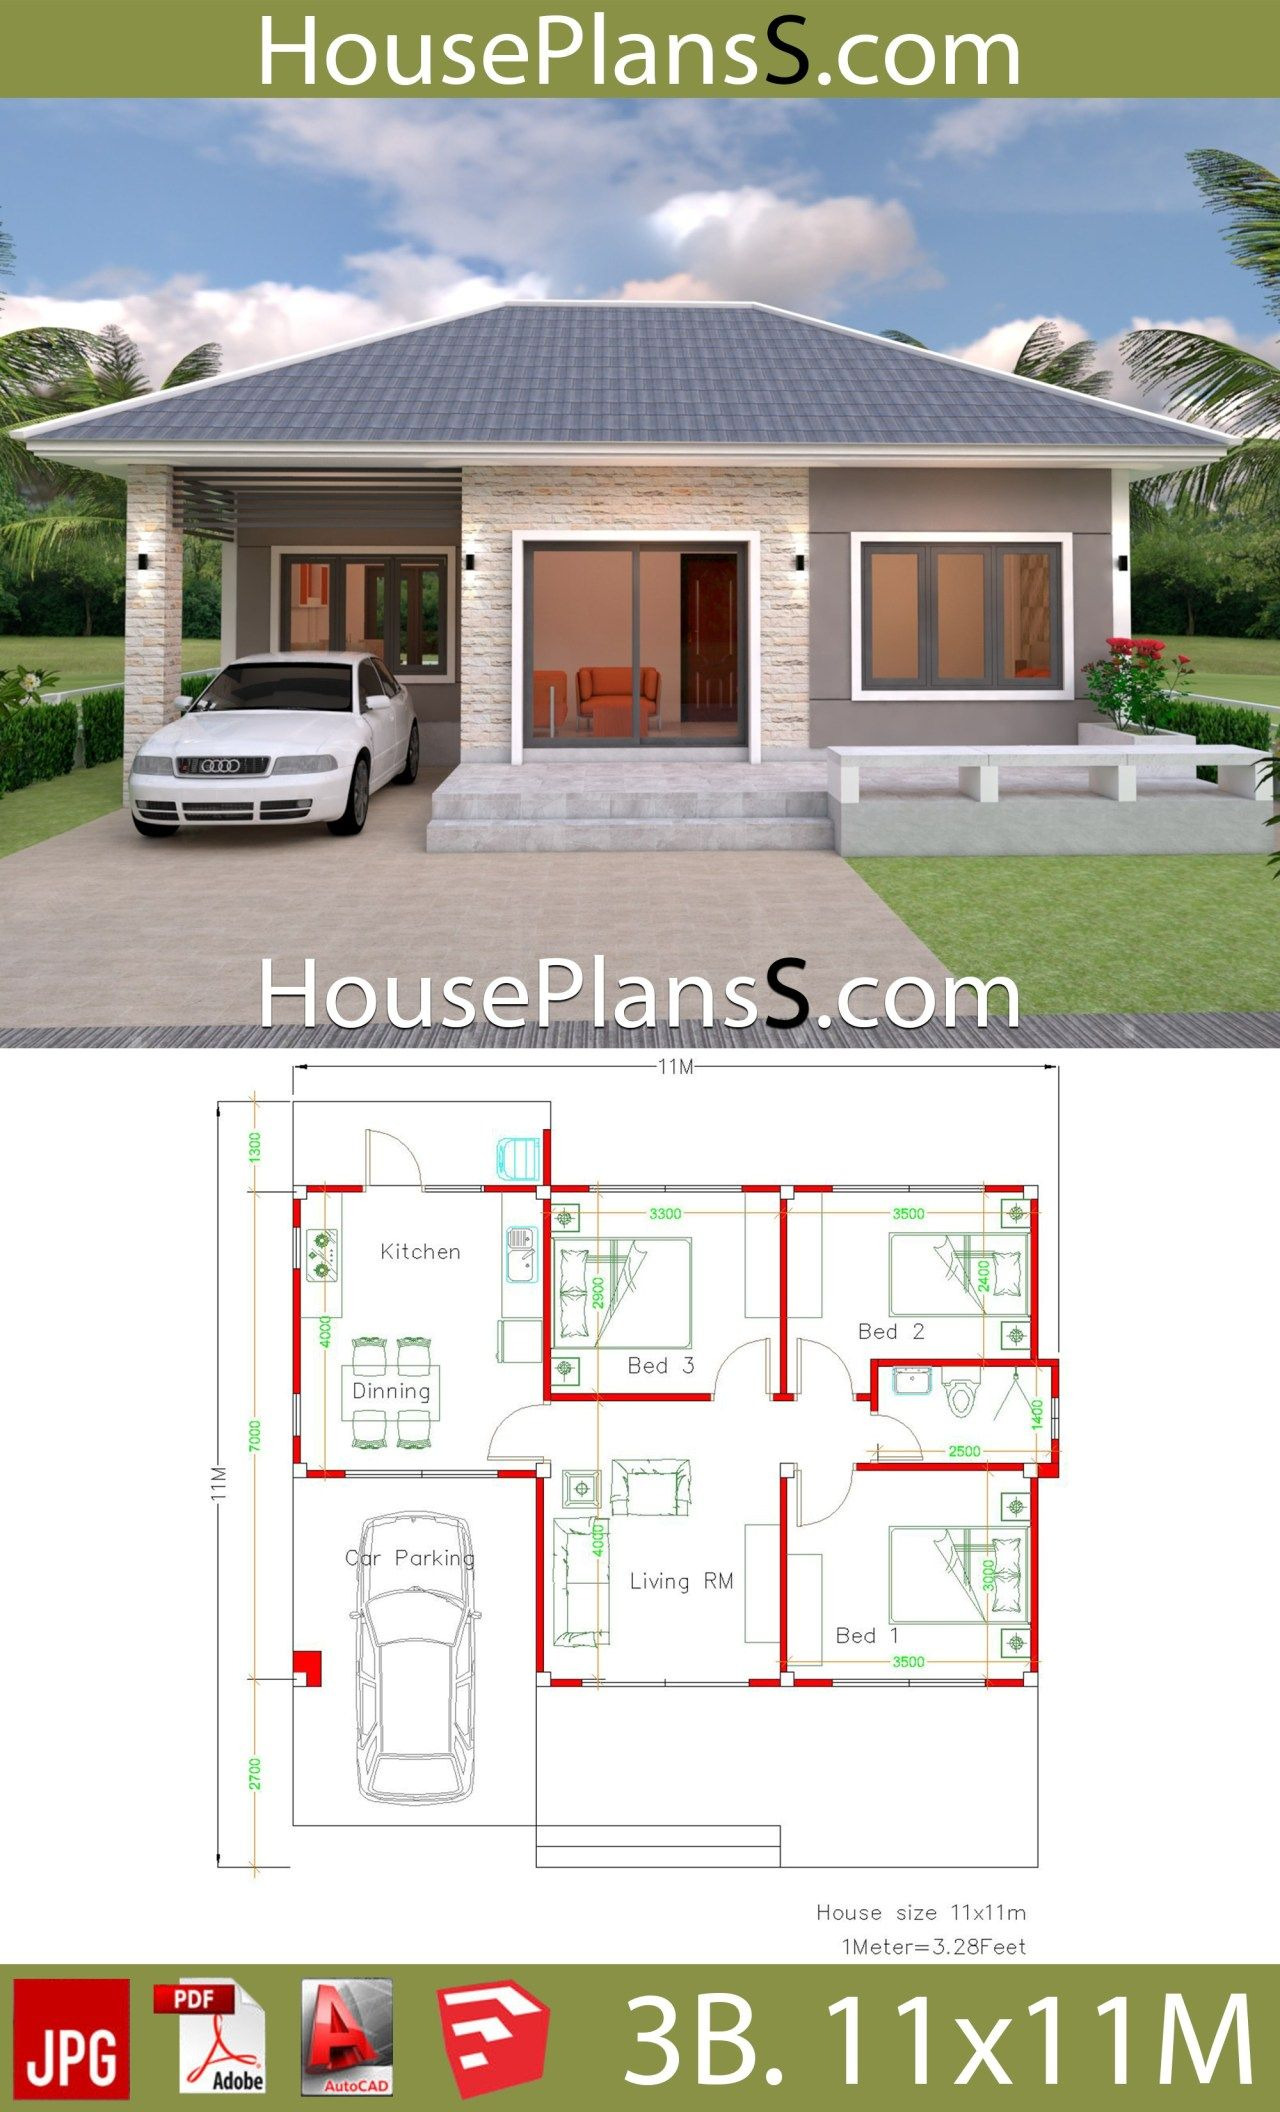 Small House Plans with 3 Bedrooms Best Of Simple House Design Plans 11—11 with 3 Bedrooms Full Plans